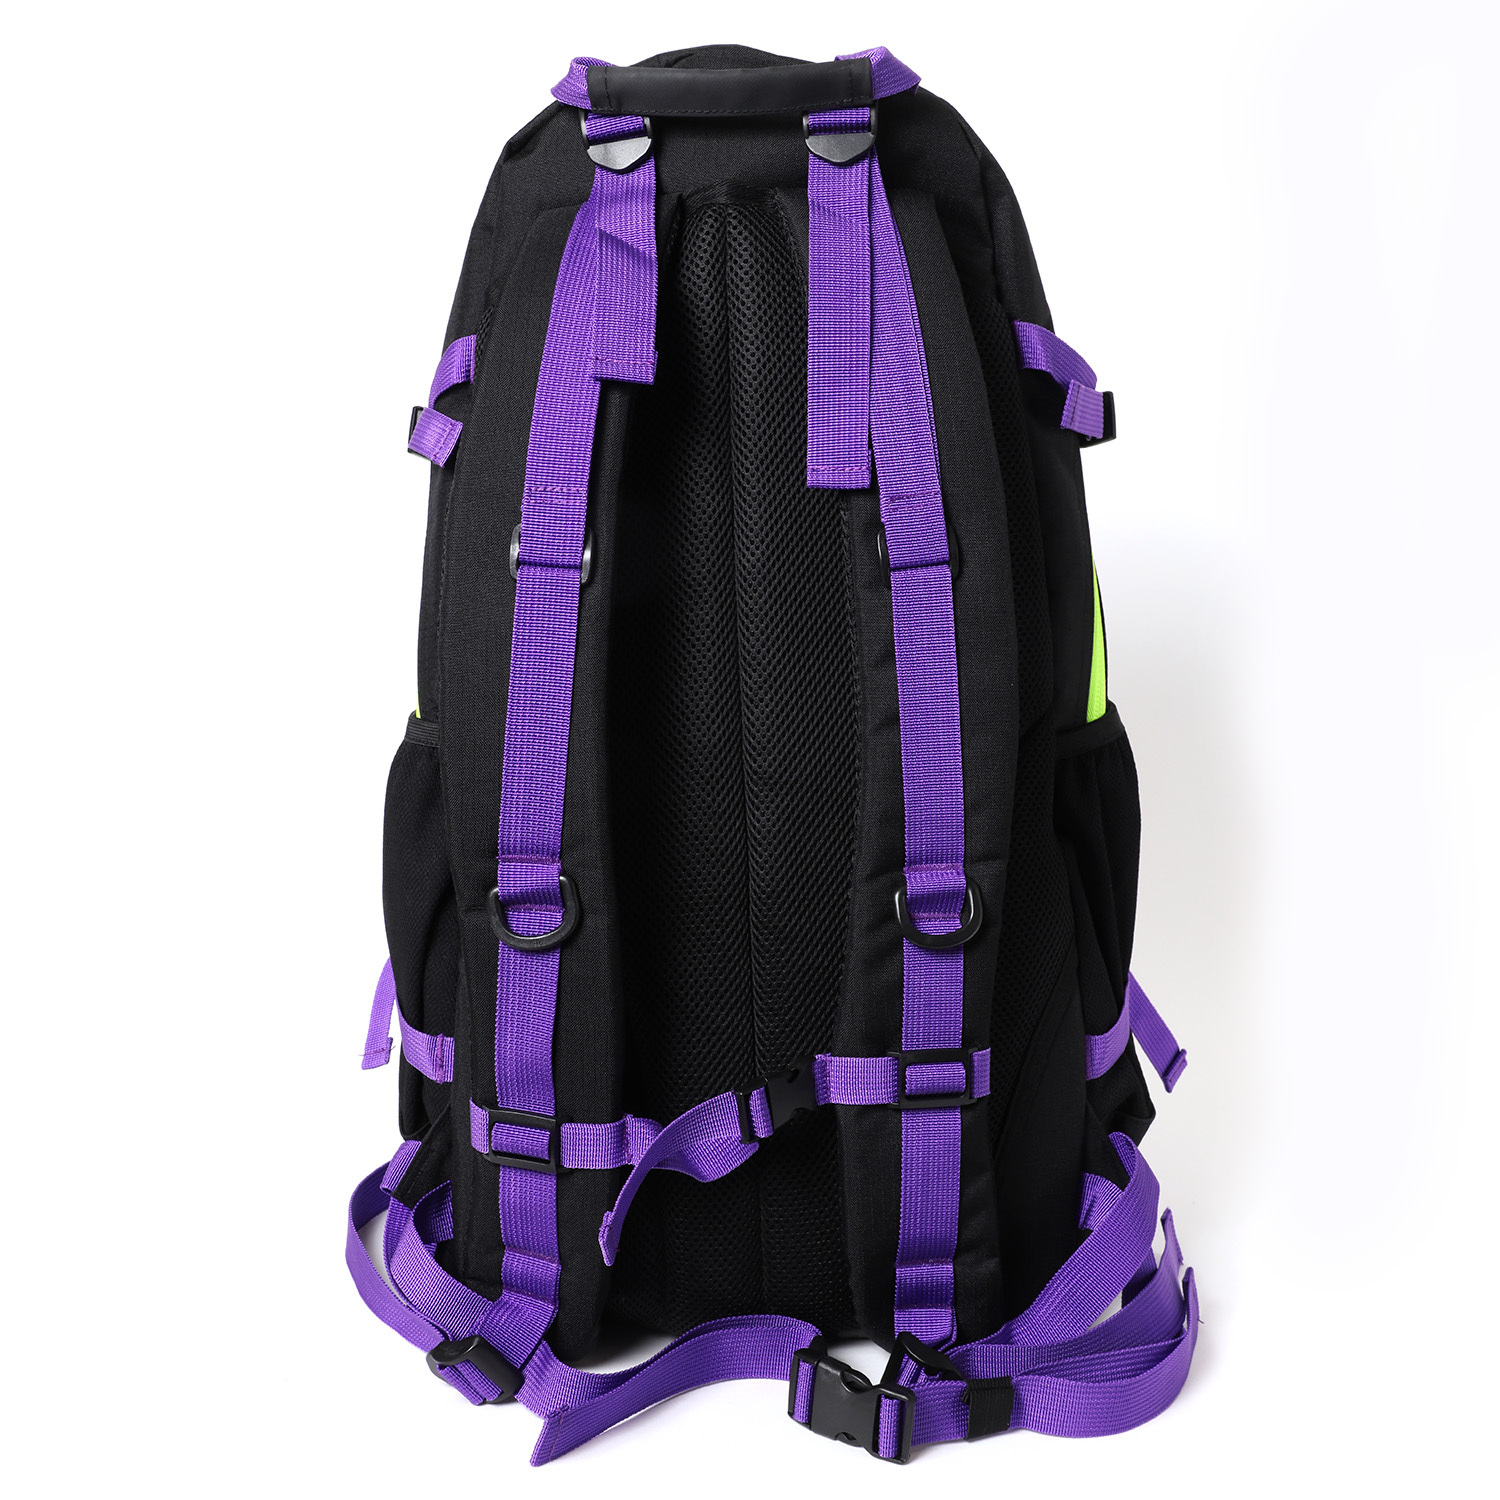 EVA-01 Cager Backpack by SPALDING (Black x Green)